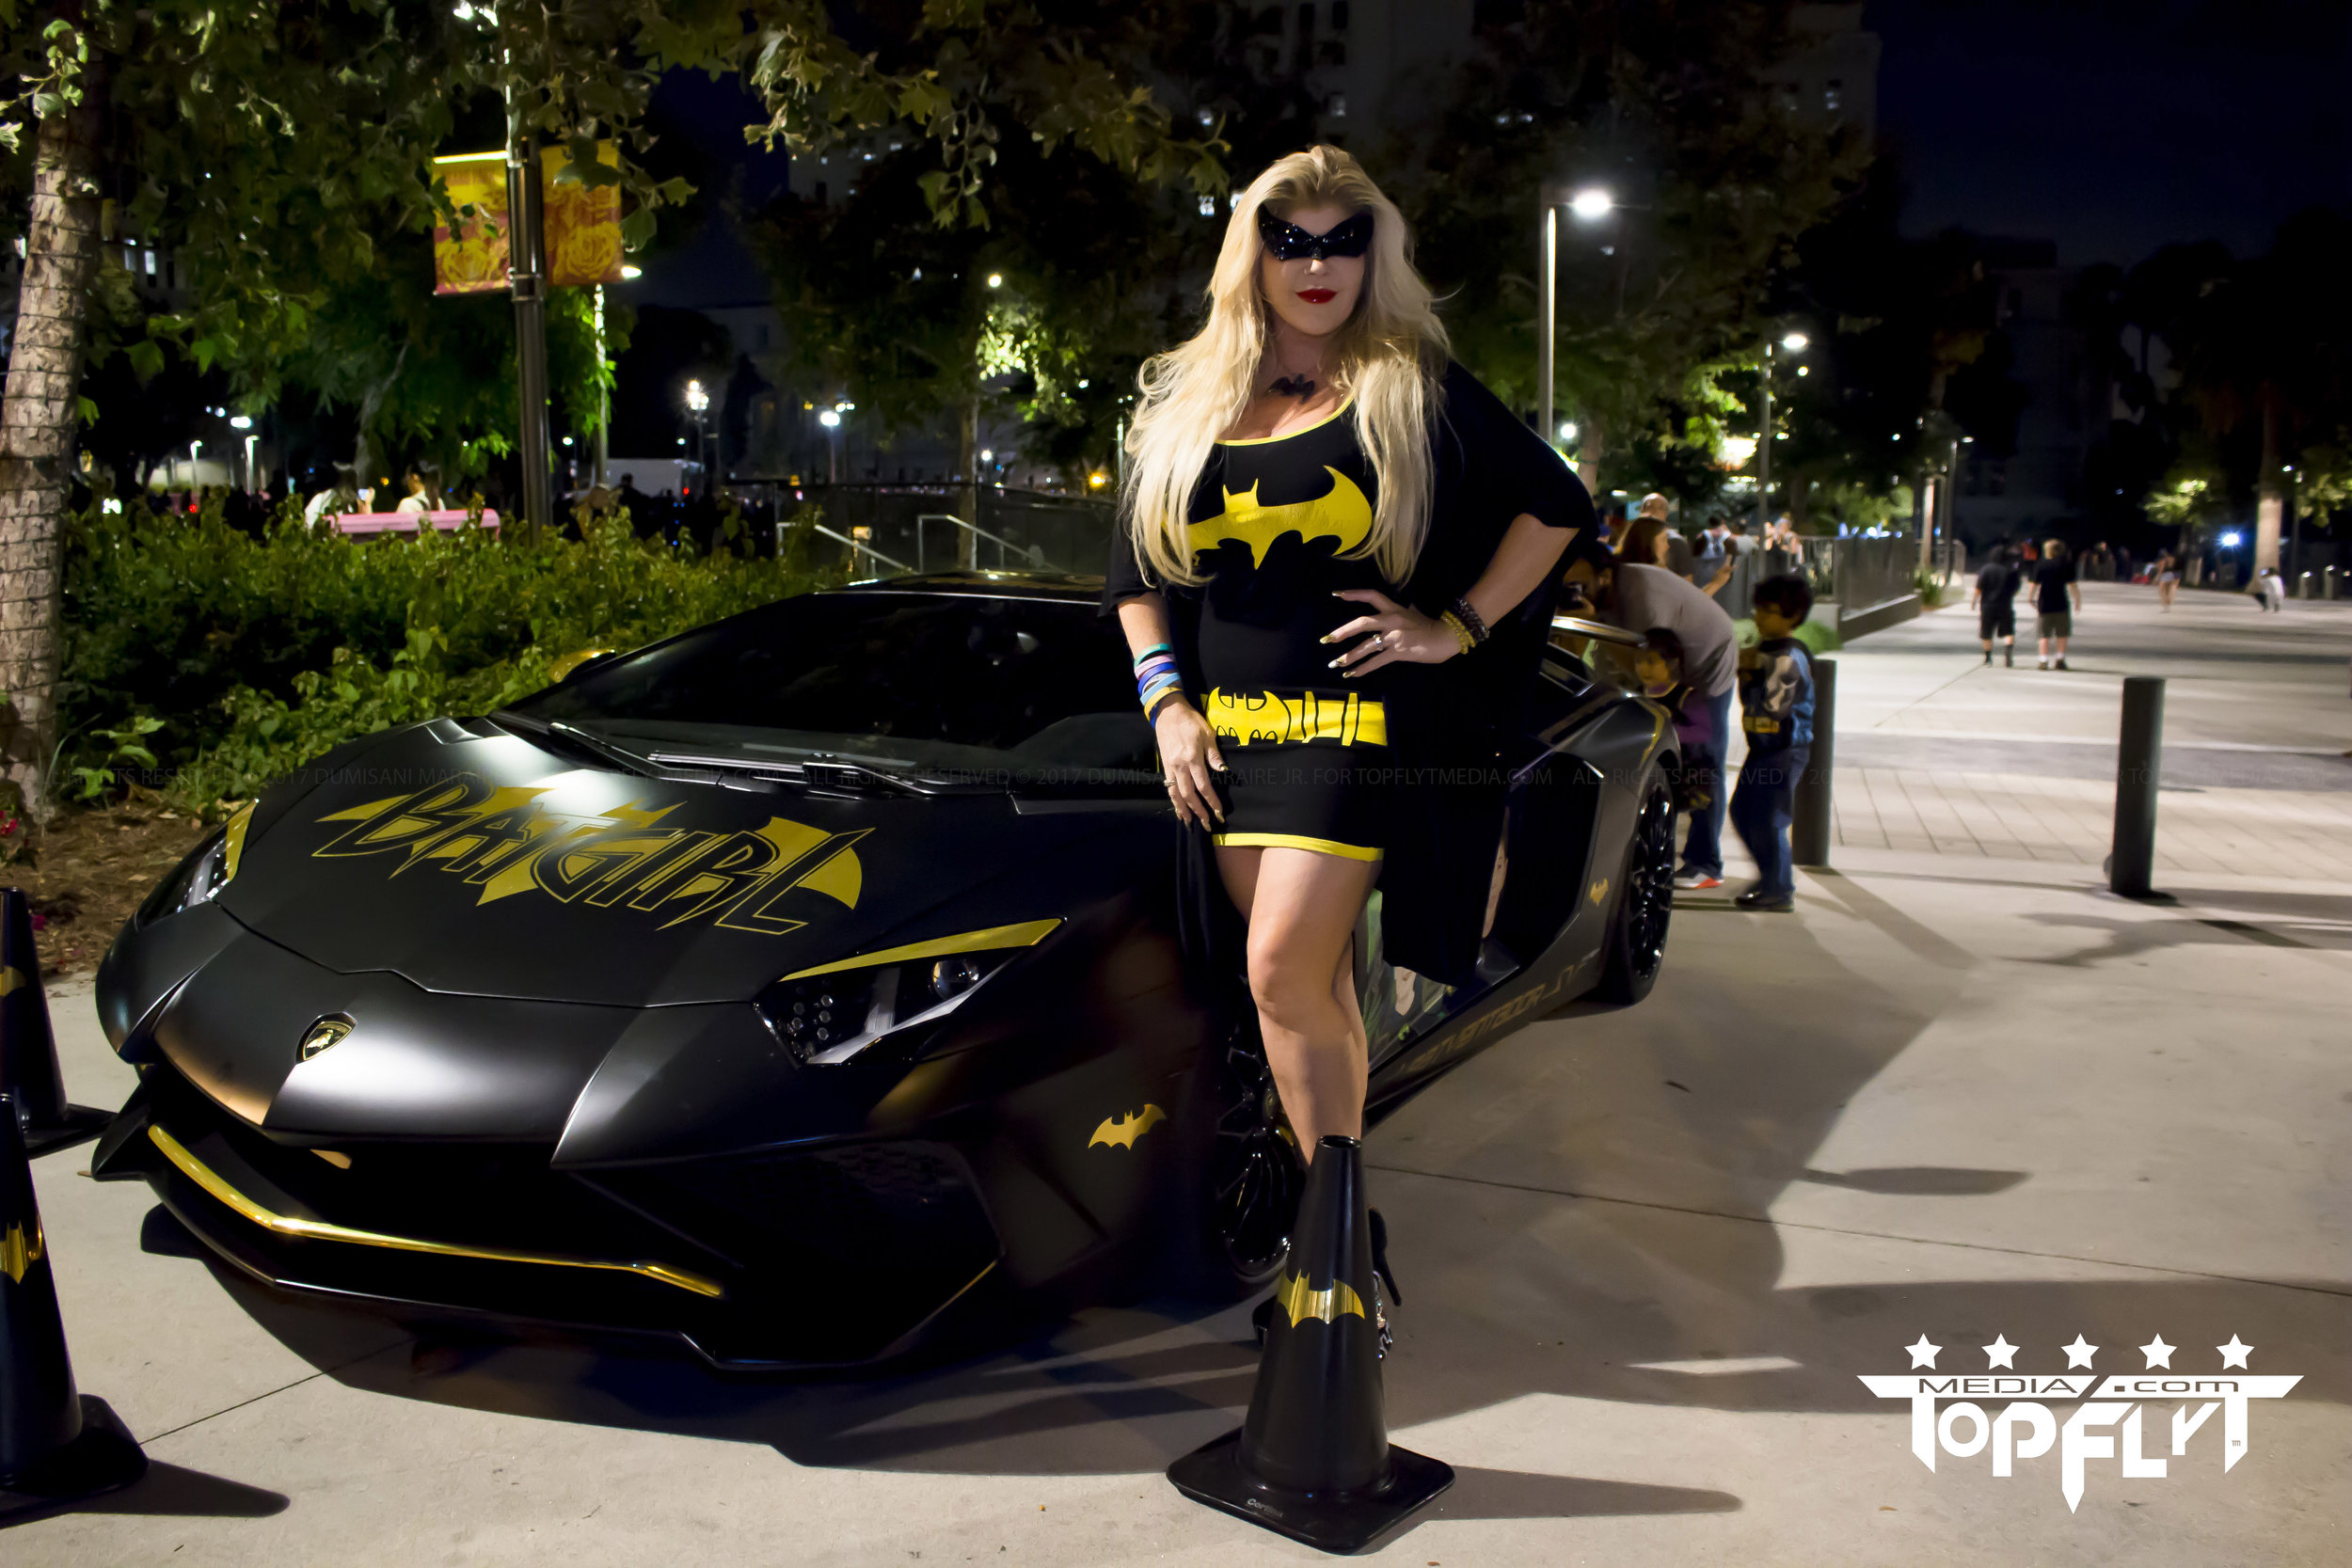 Batman Light Los Angeles City Hall Adam West Bat Girl Batventador